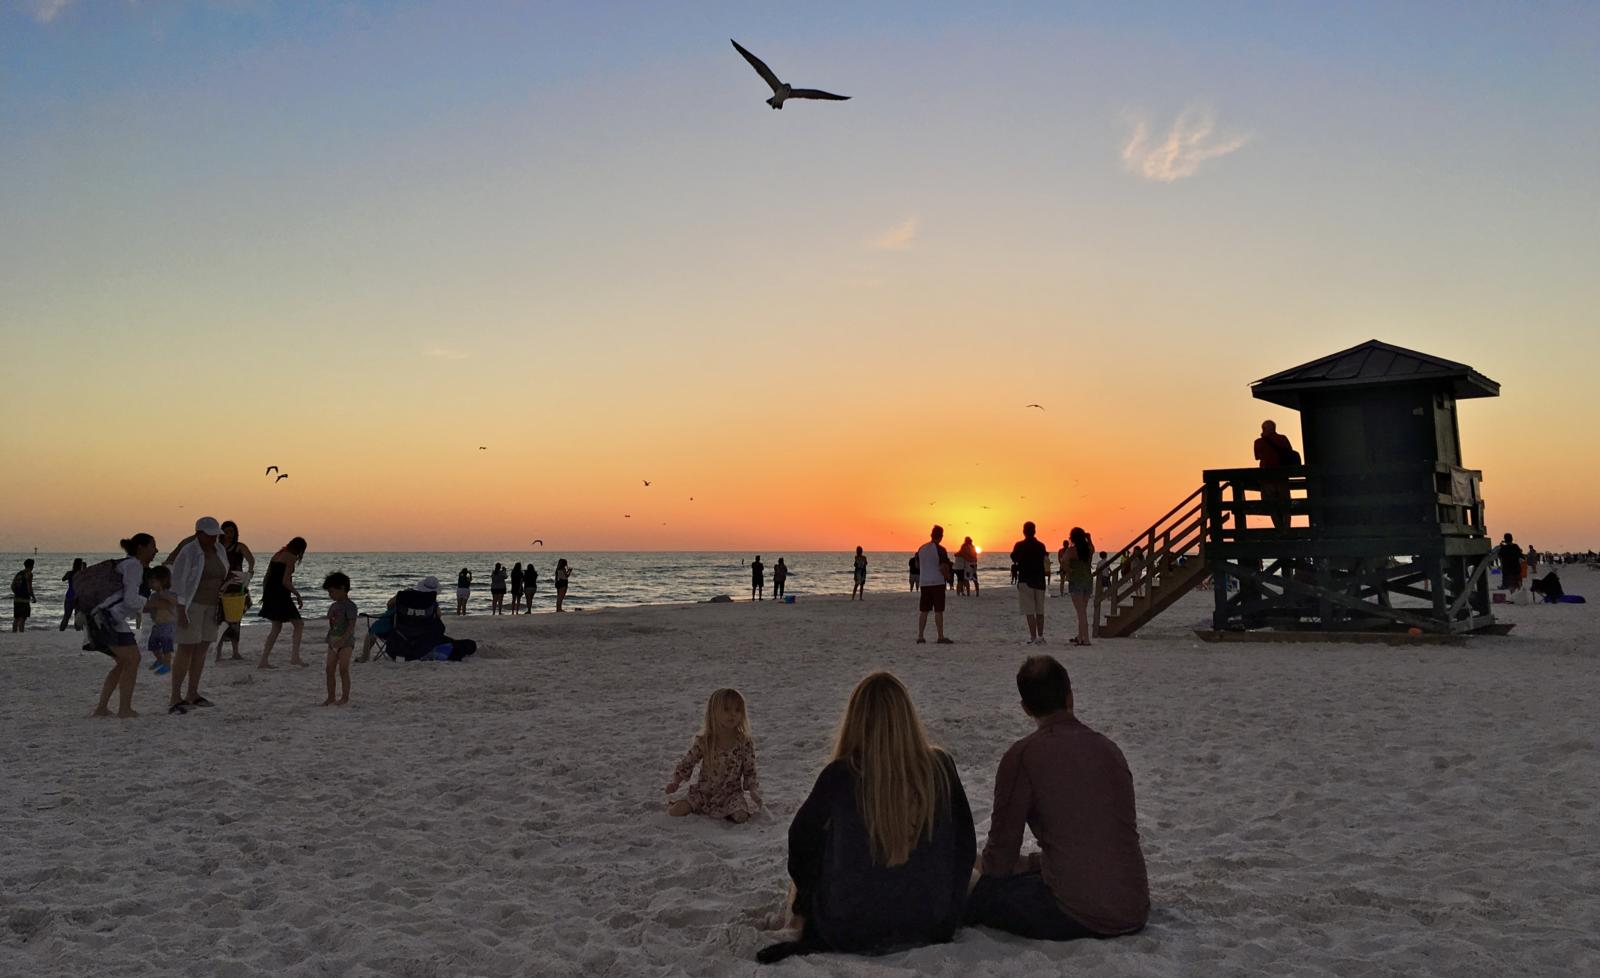 Watching the sunset on Siesta Key near Peppertree Bay